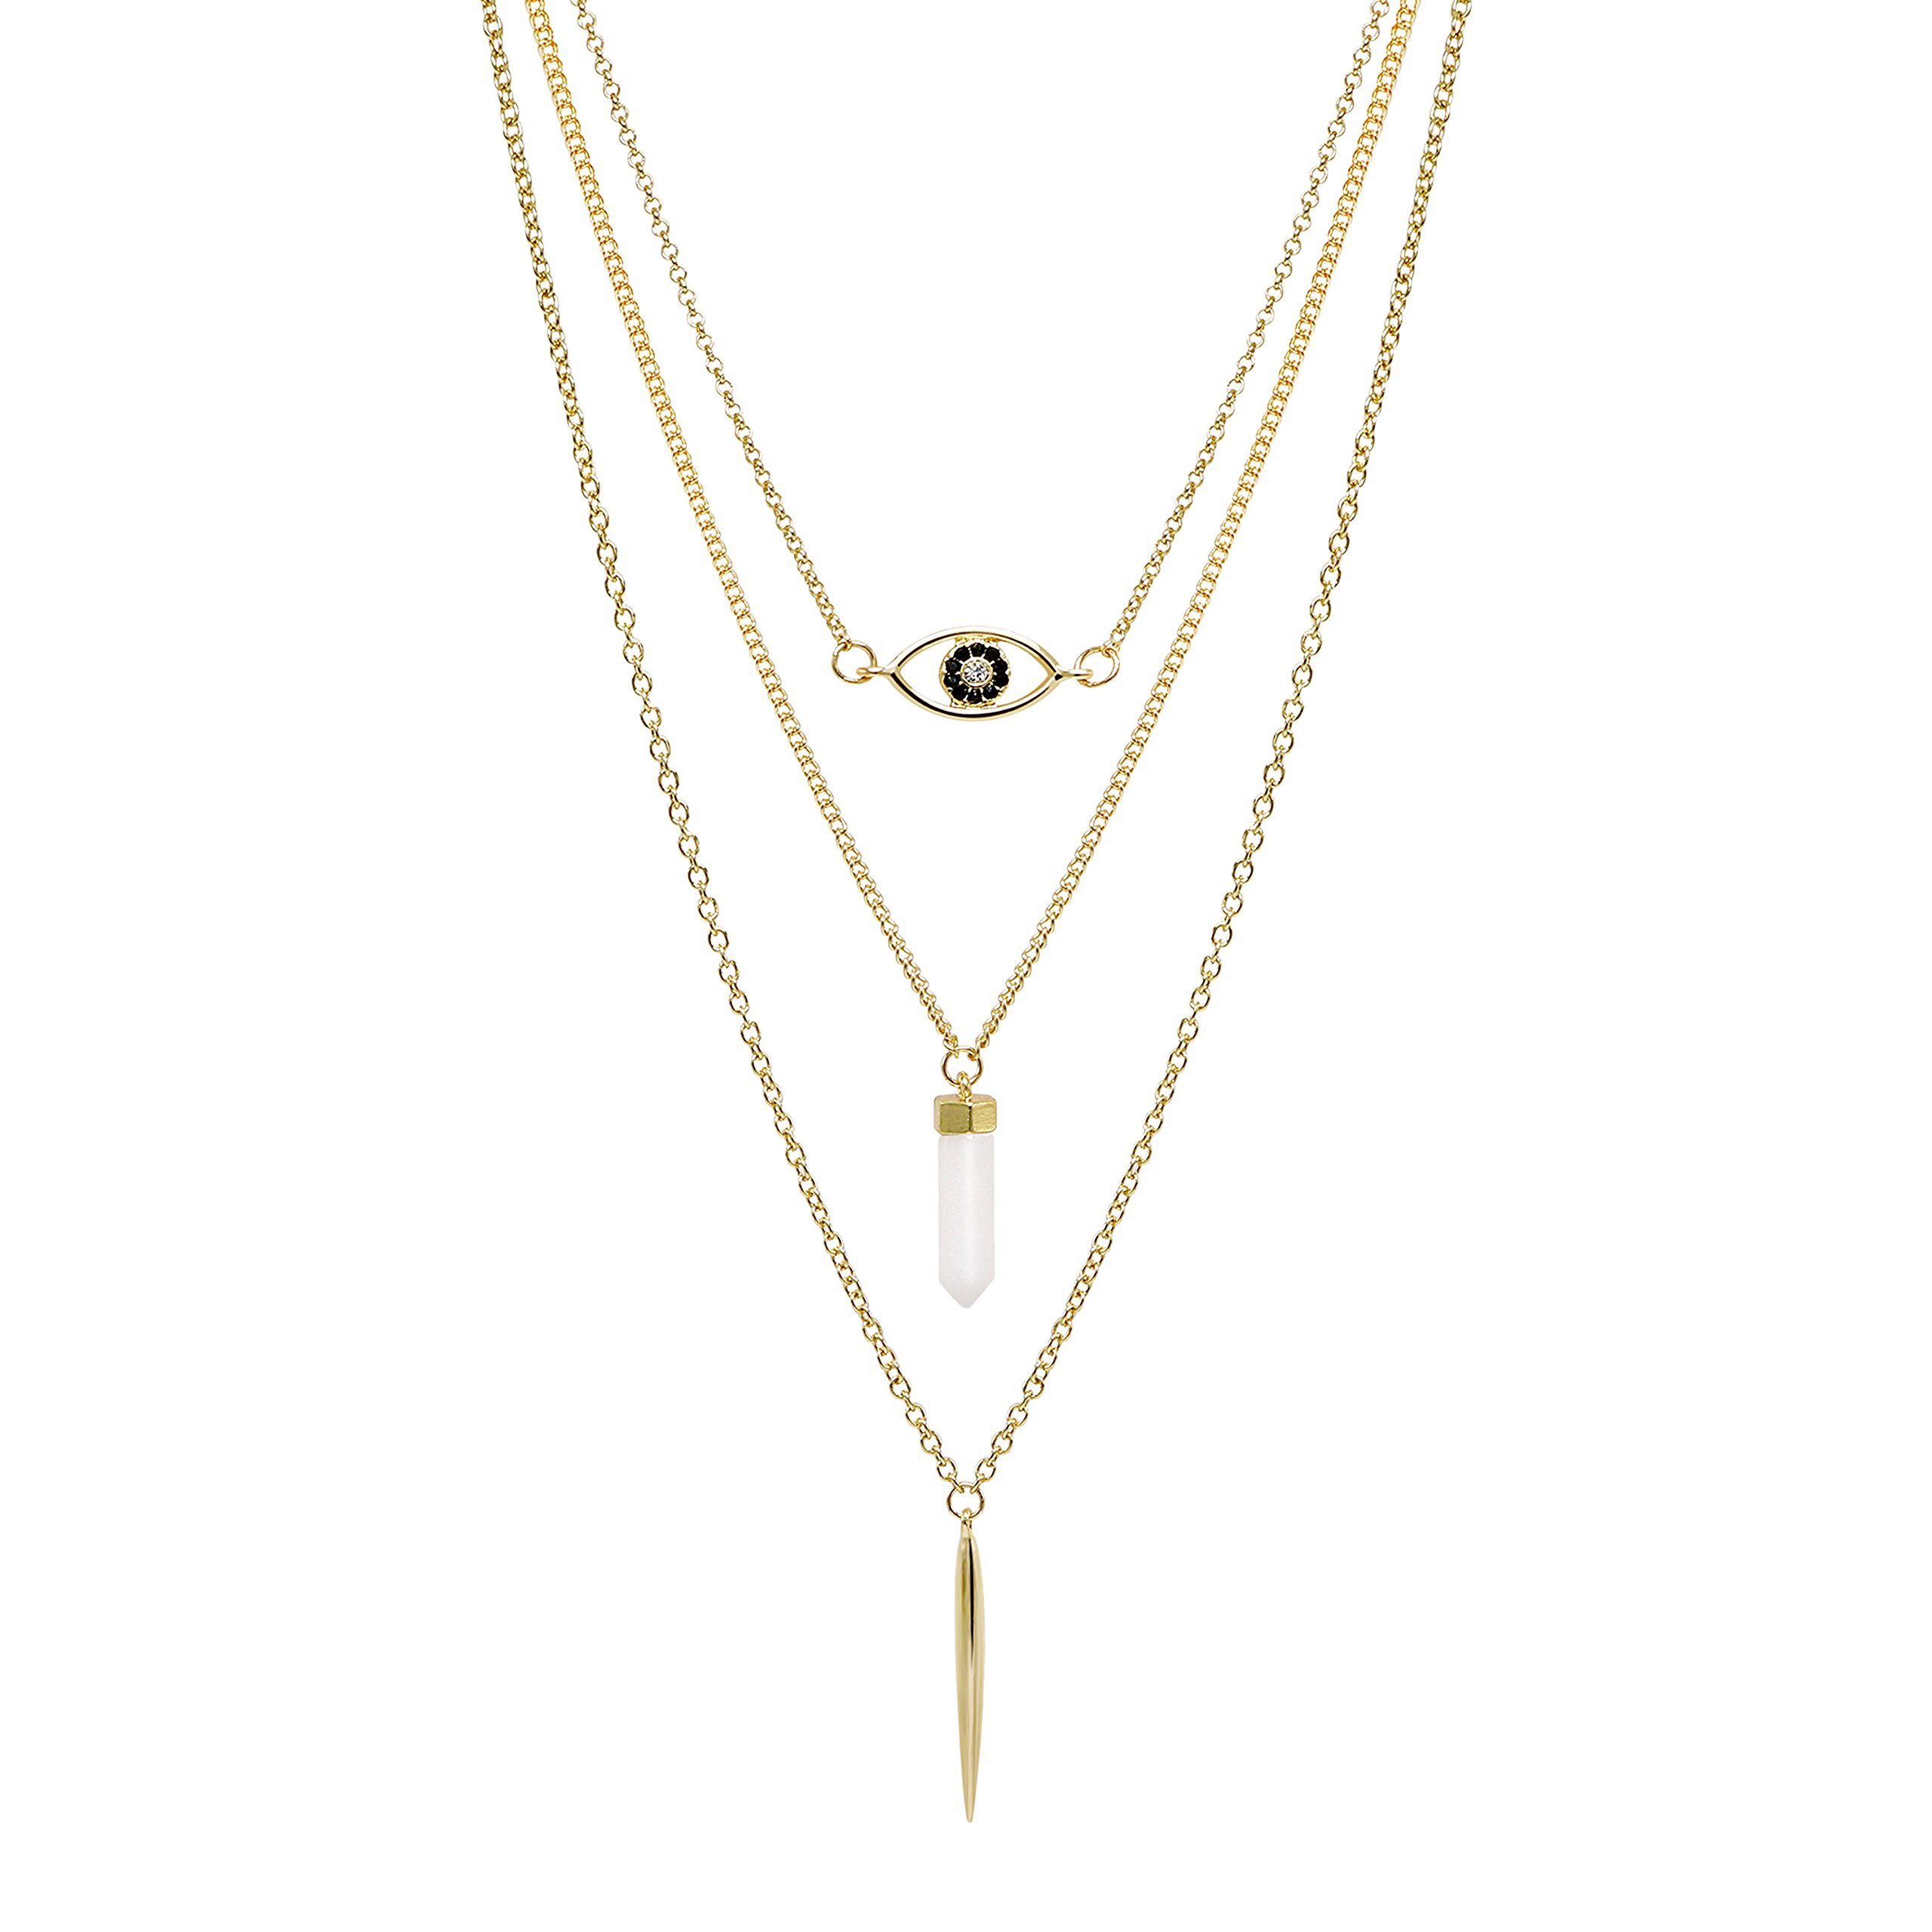 T-Doreen Gold Tone Layered Evil Eye White Quartz Stone Metal Spike Pendant Necklace for Women